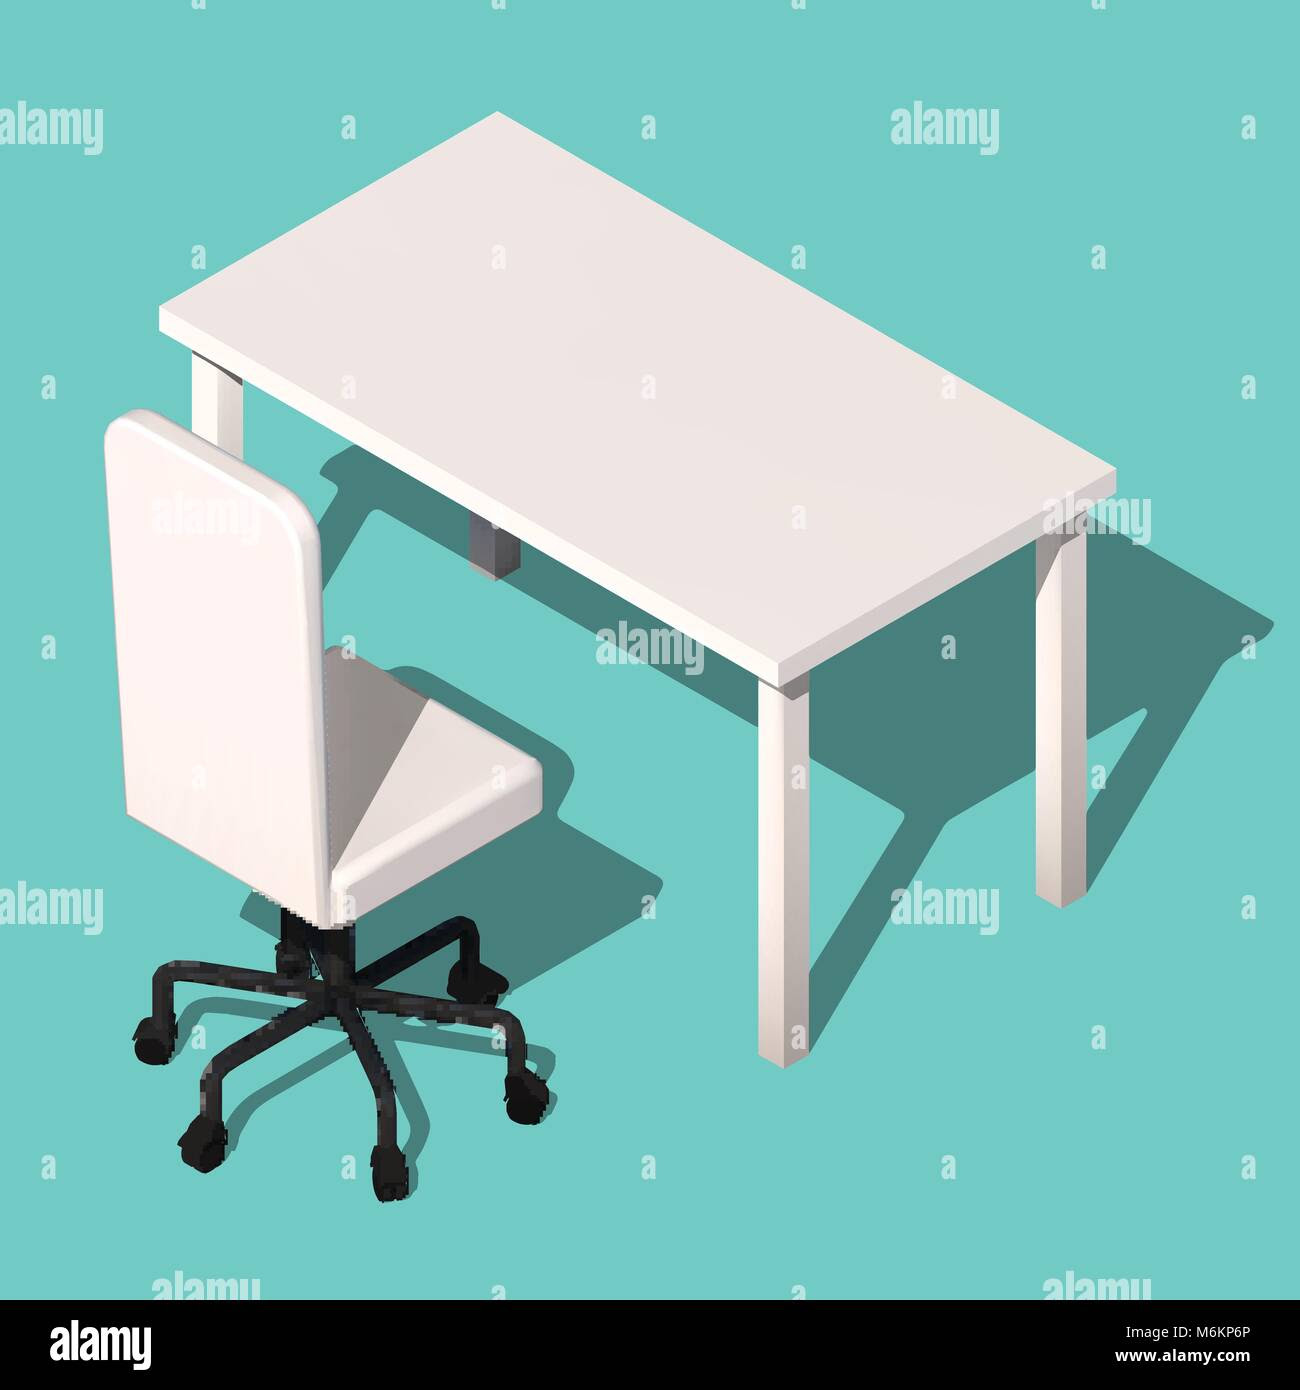 Isometric Office Table And Wheelchair Modern Workplace Design Stock